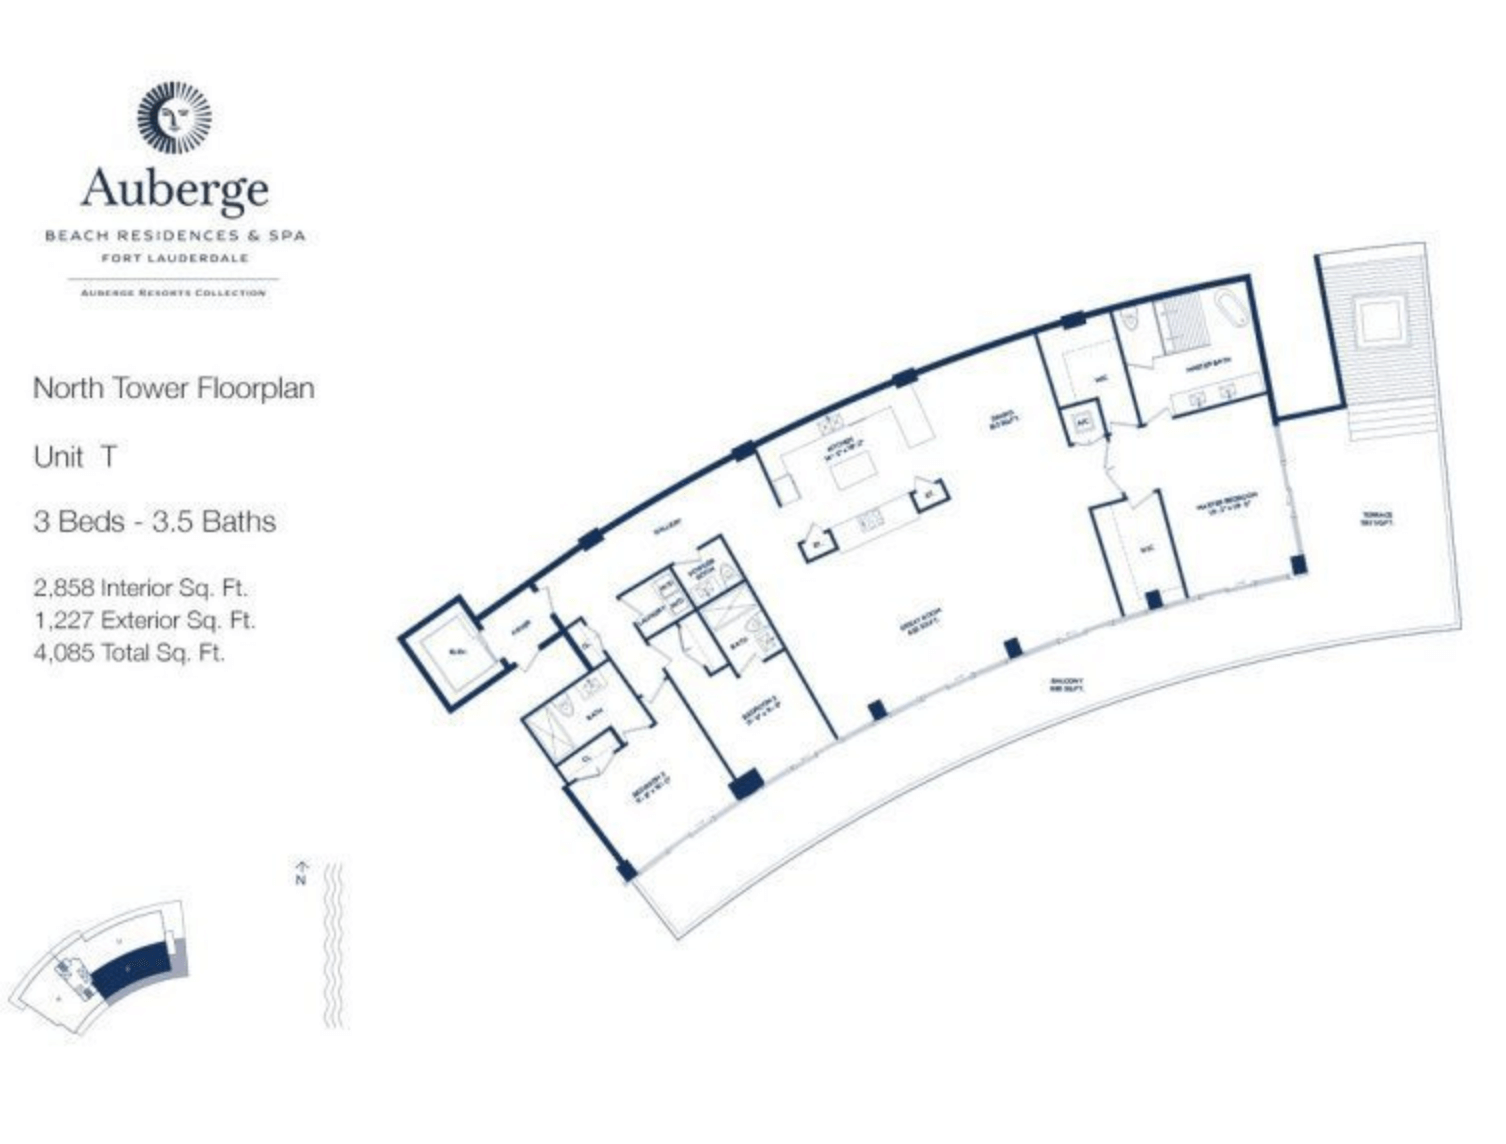 Auberge Beach Residences North Tower T | 3 Beds - 3.5 baths